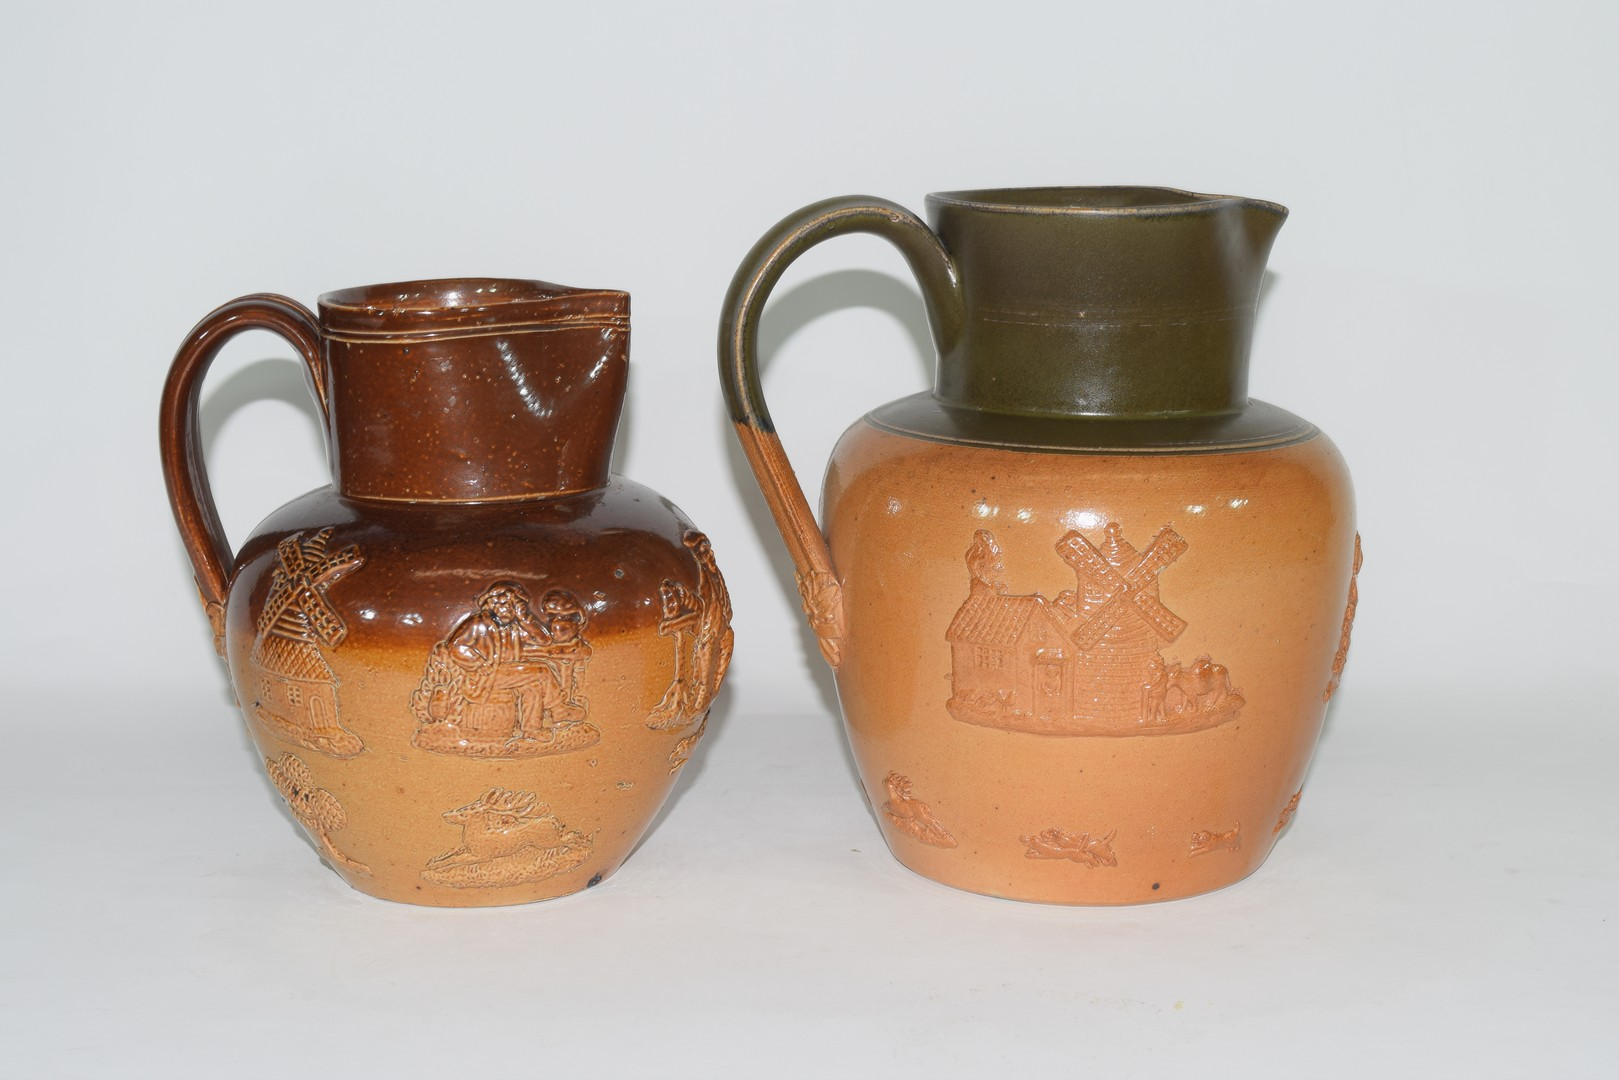 Doulton Lambeth brown harvest ware jug and one other - Image 3 of 8